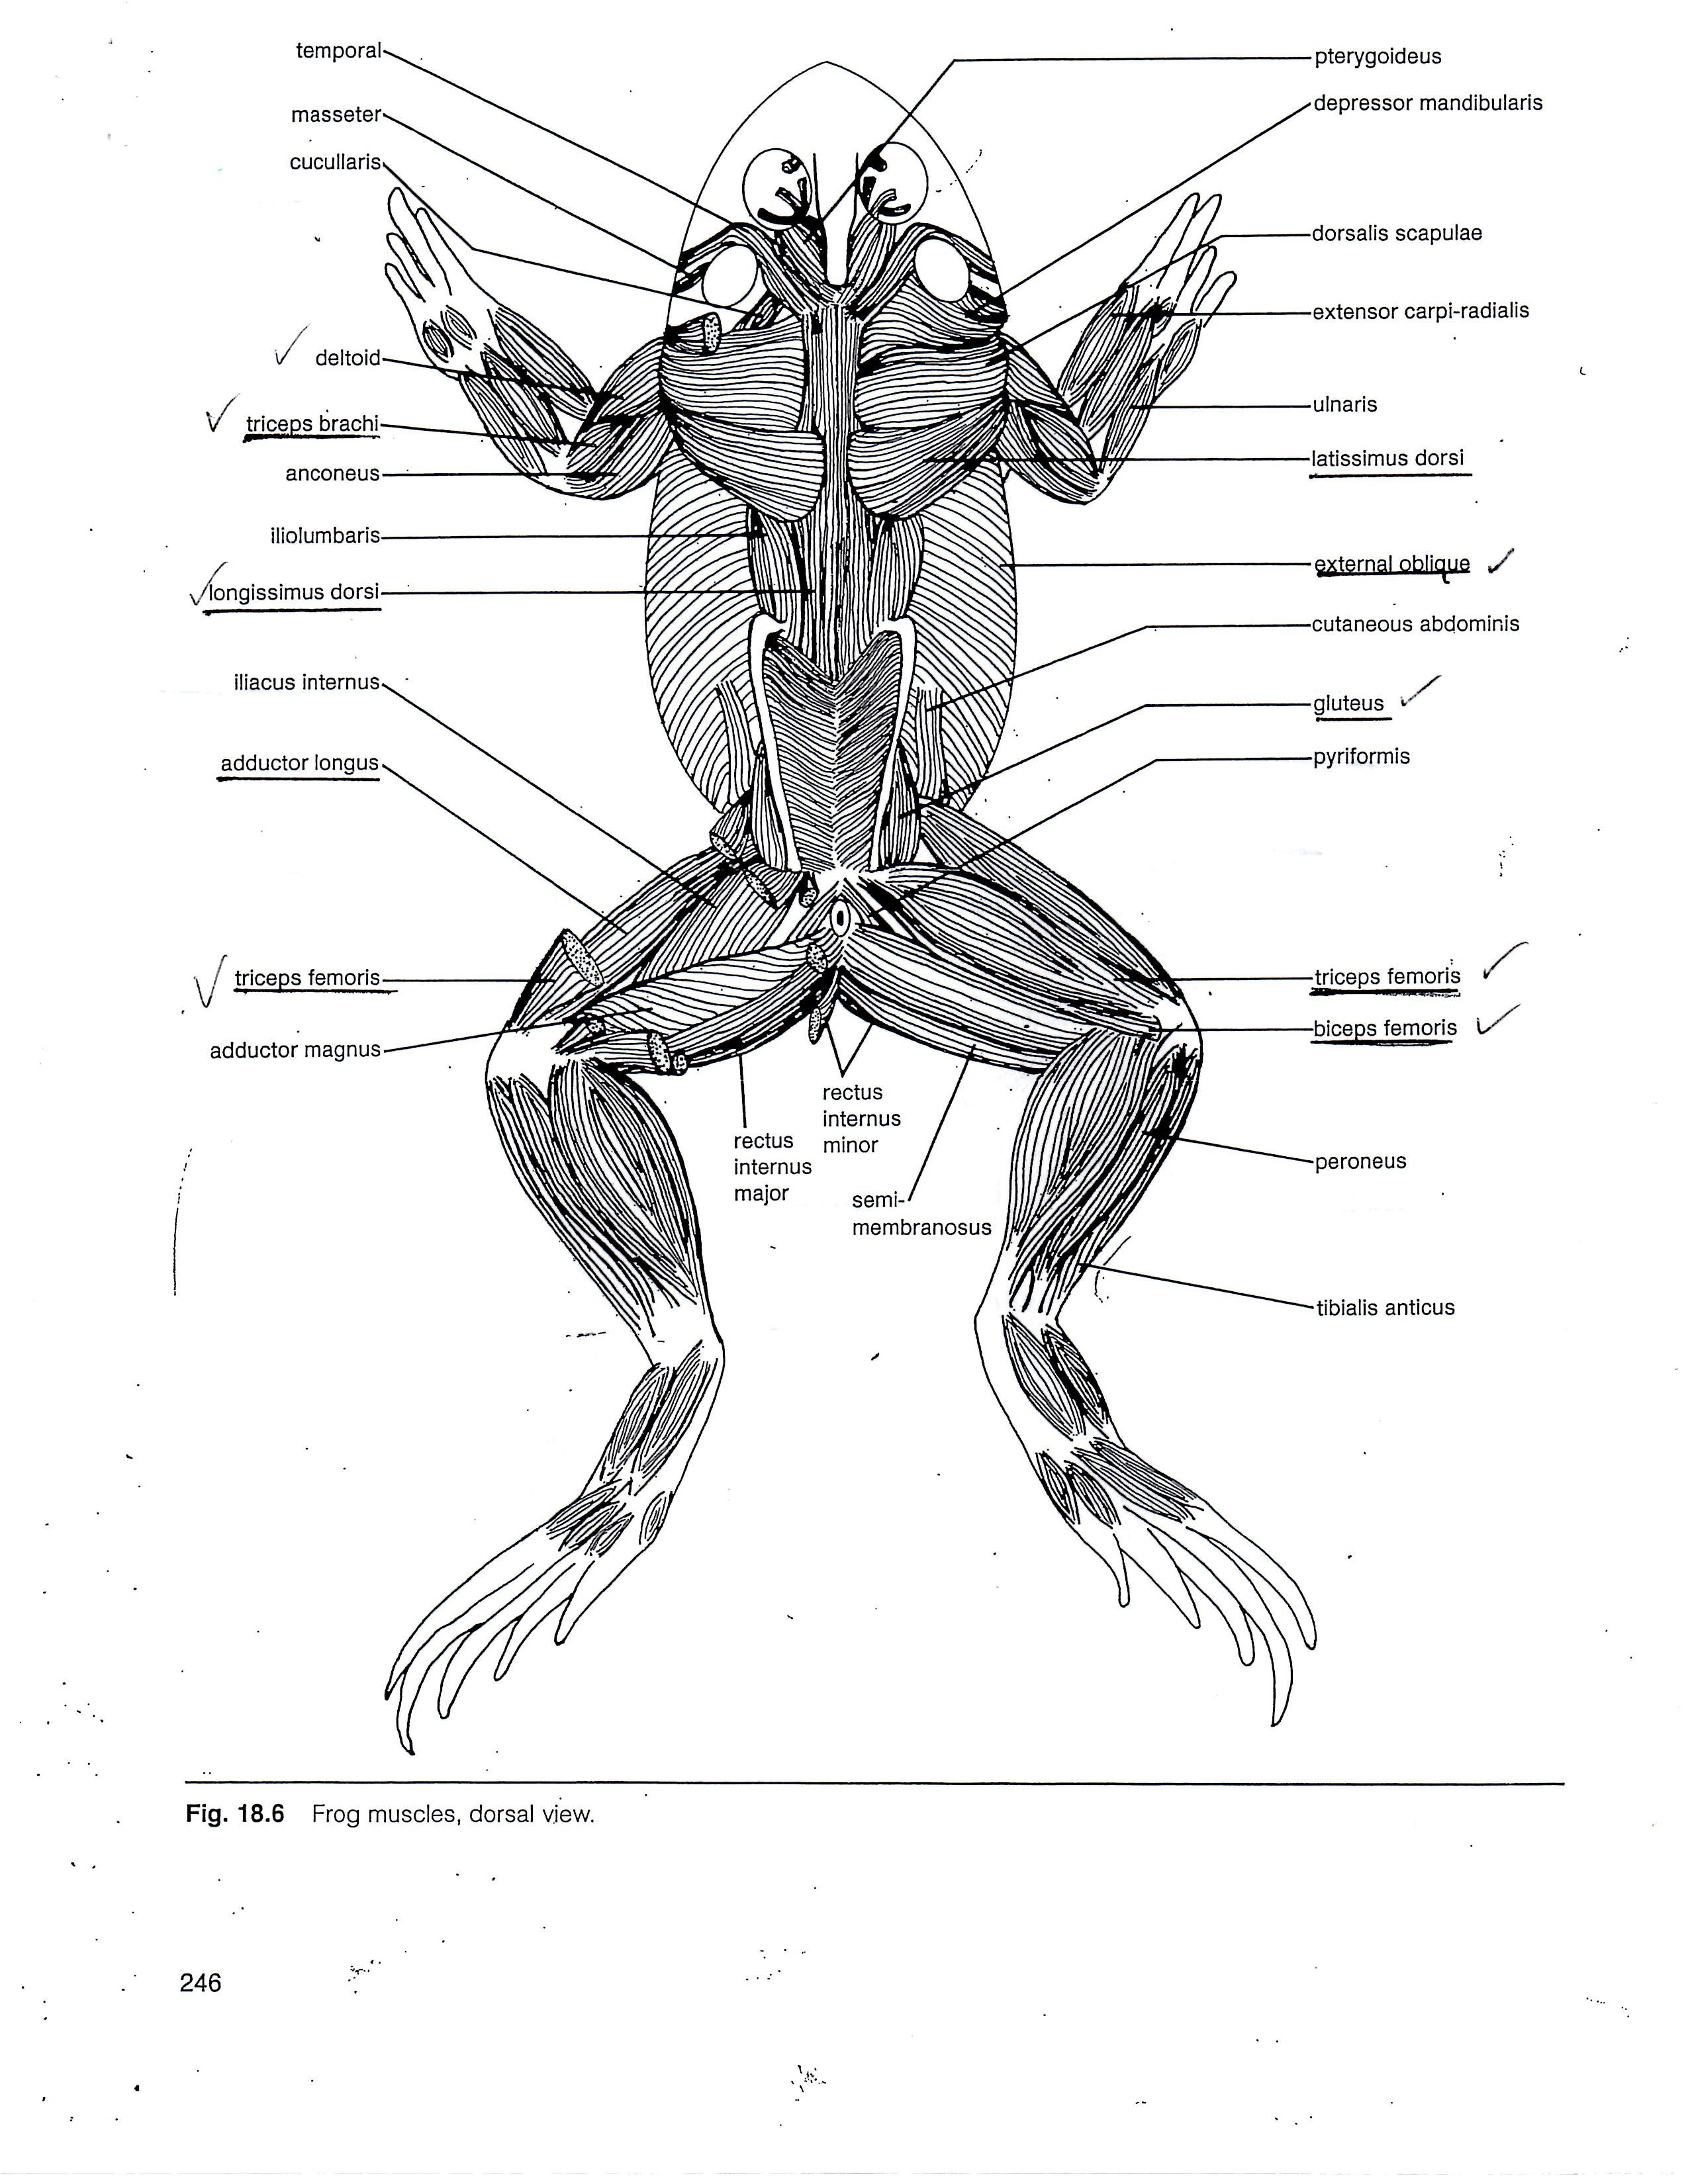 frog anatomy diagram labeled external frog diagram dorsal wiring diagram data  external frog diagram dorsal wiring